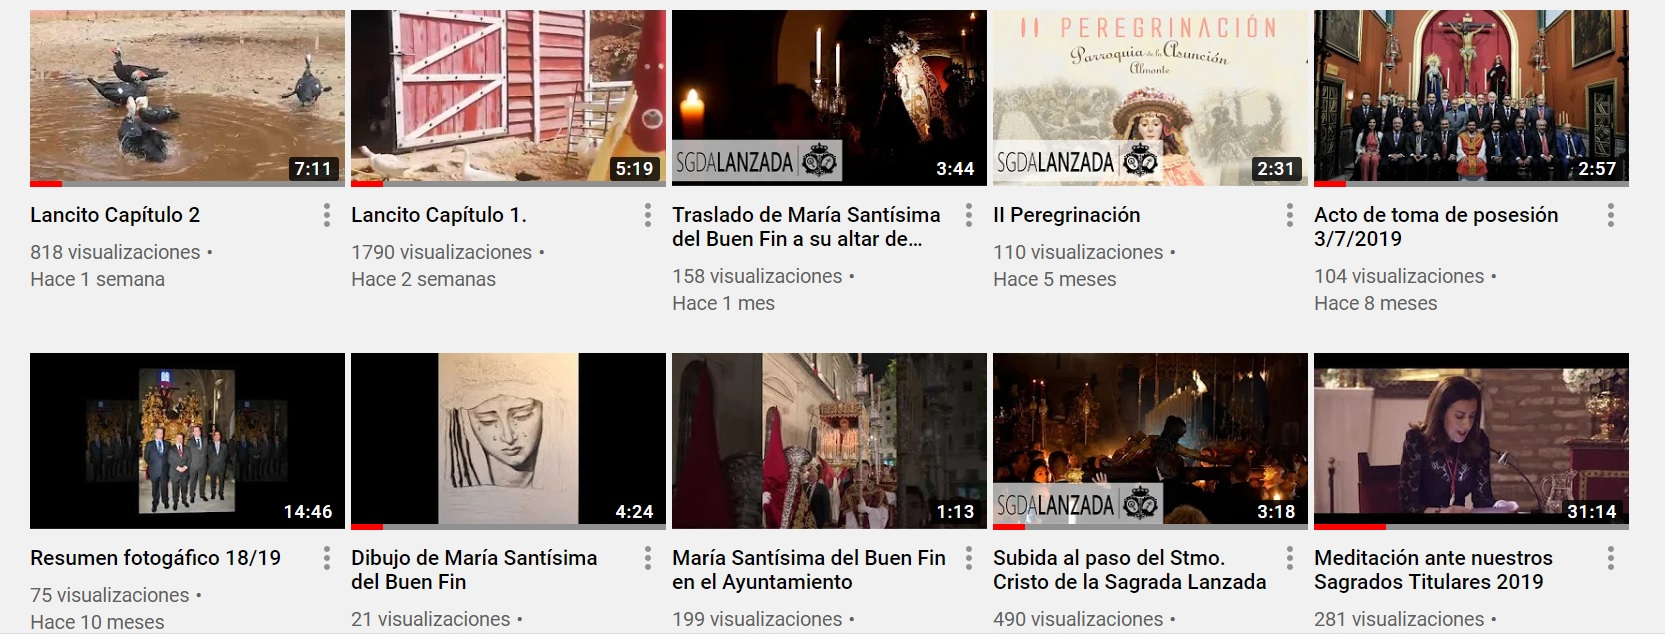 Retransmisiones en nuestro canal de Youtube